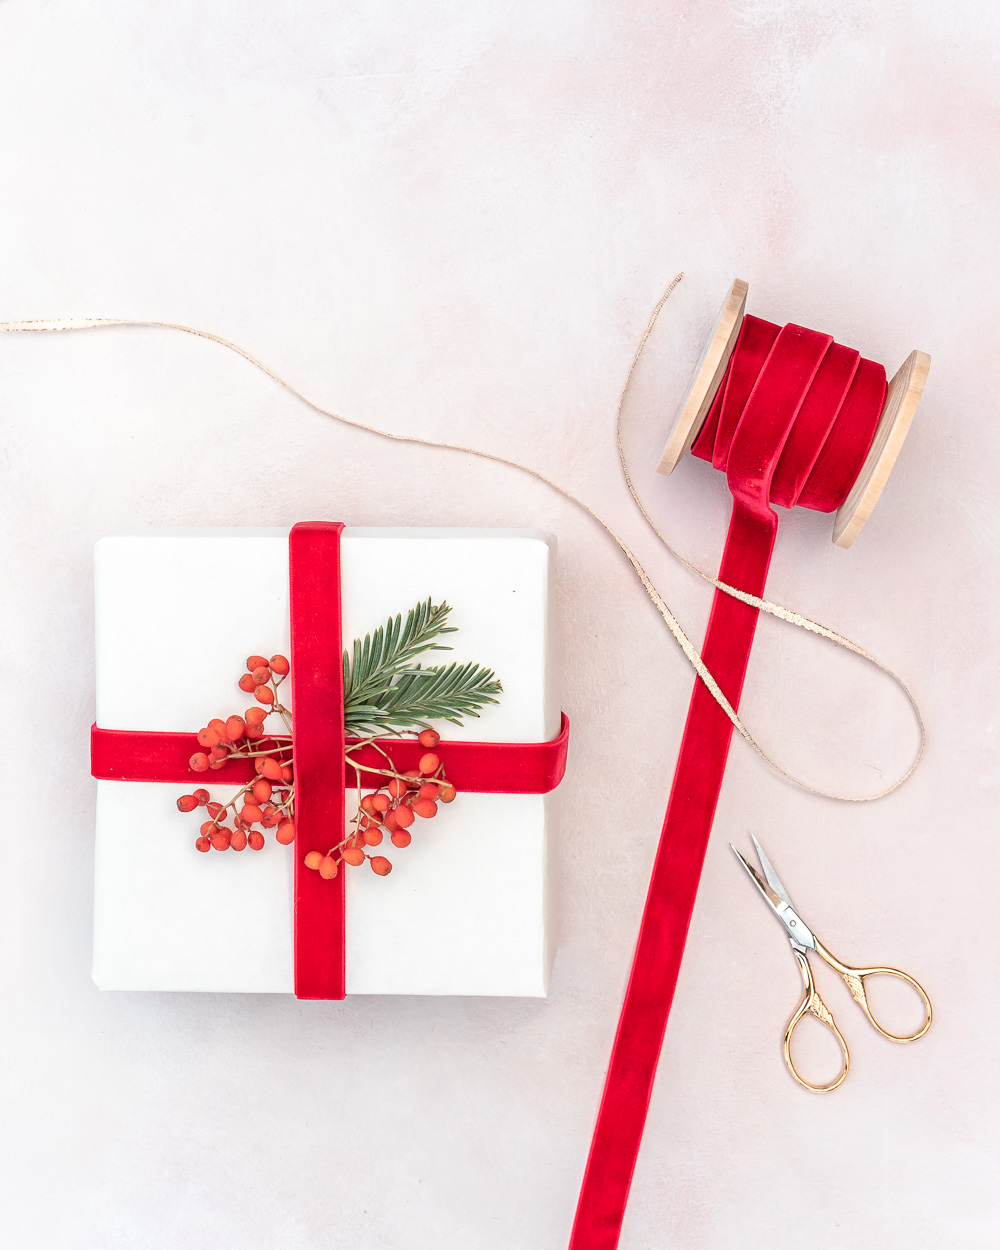 Eco-friendly gift wrapping with reusable ribbon